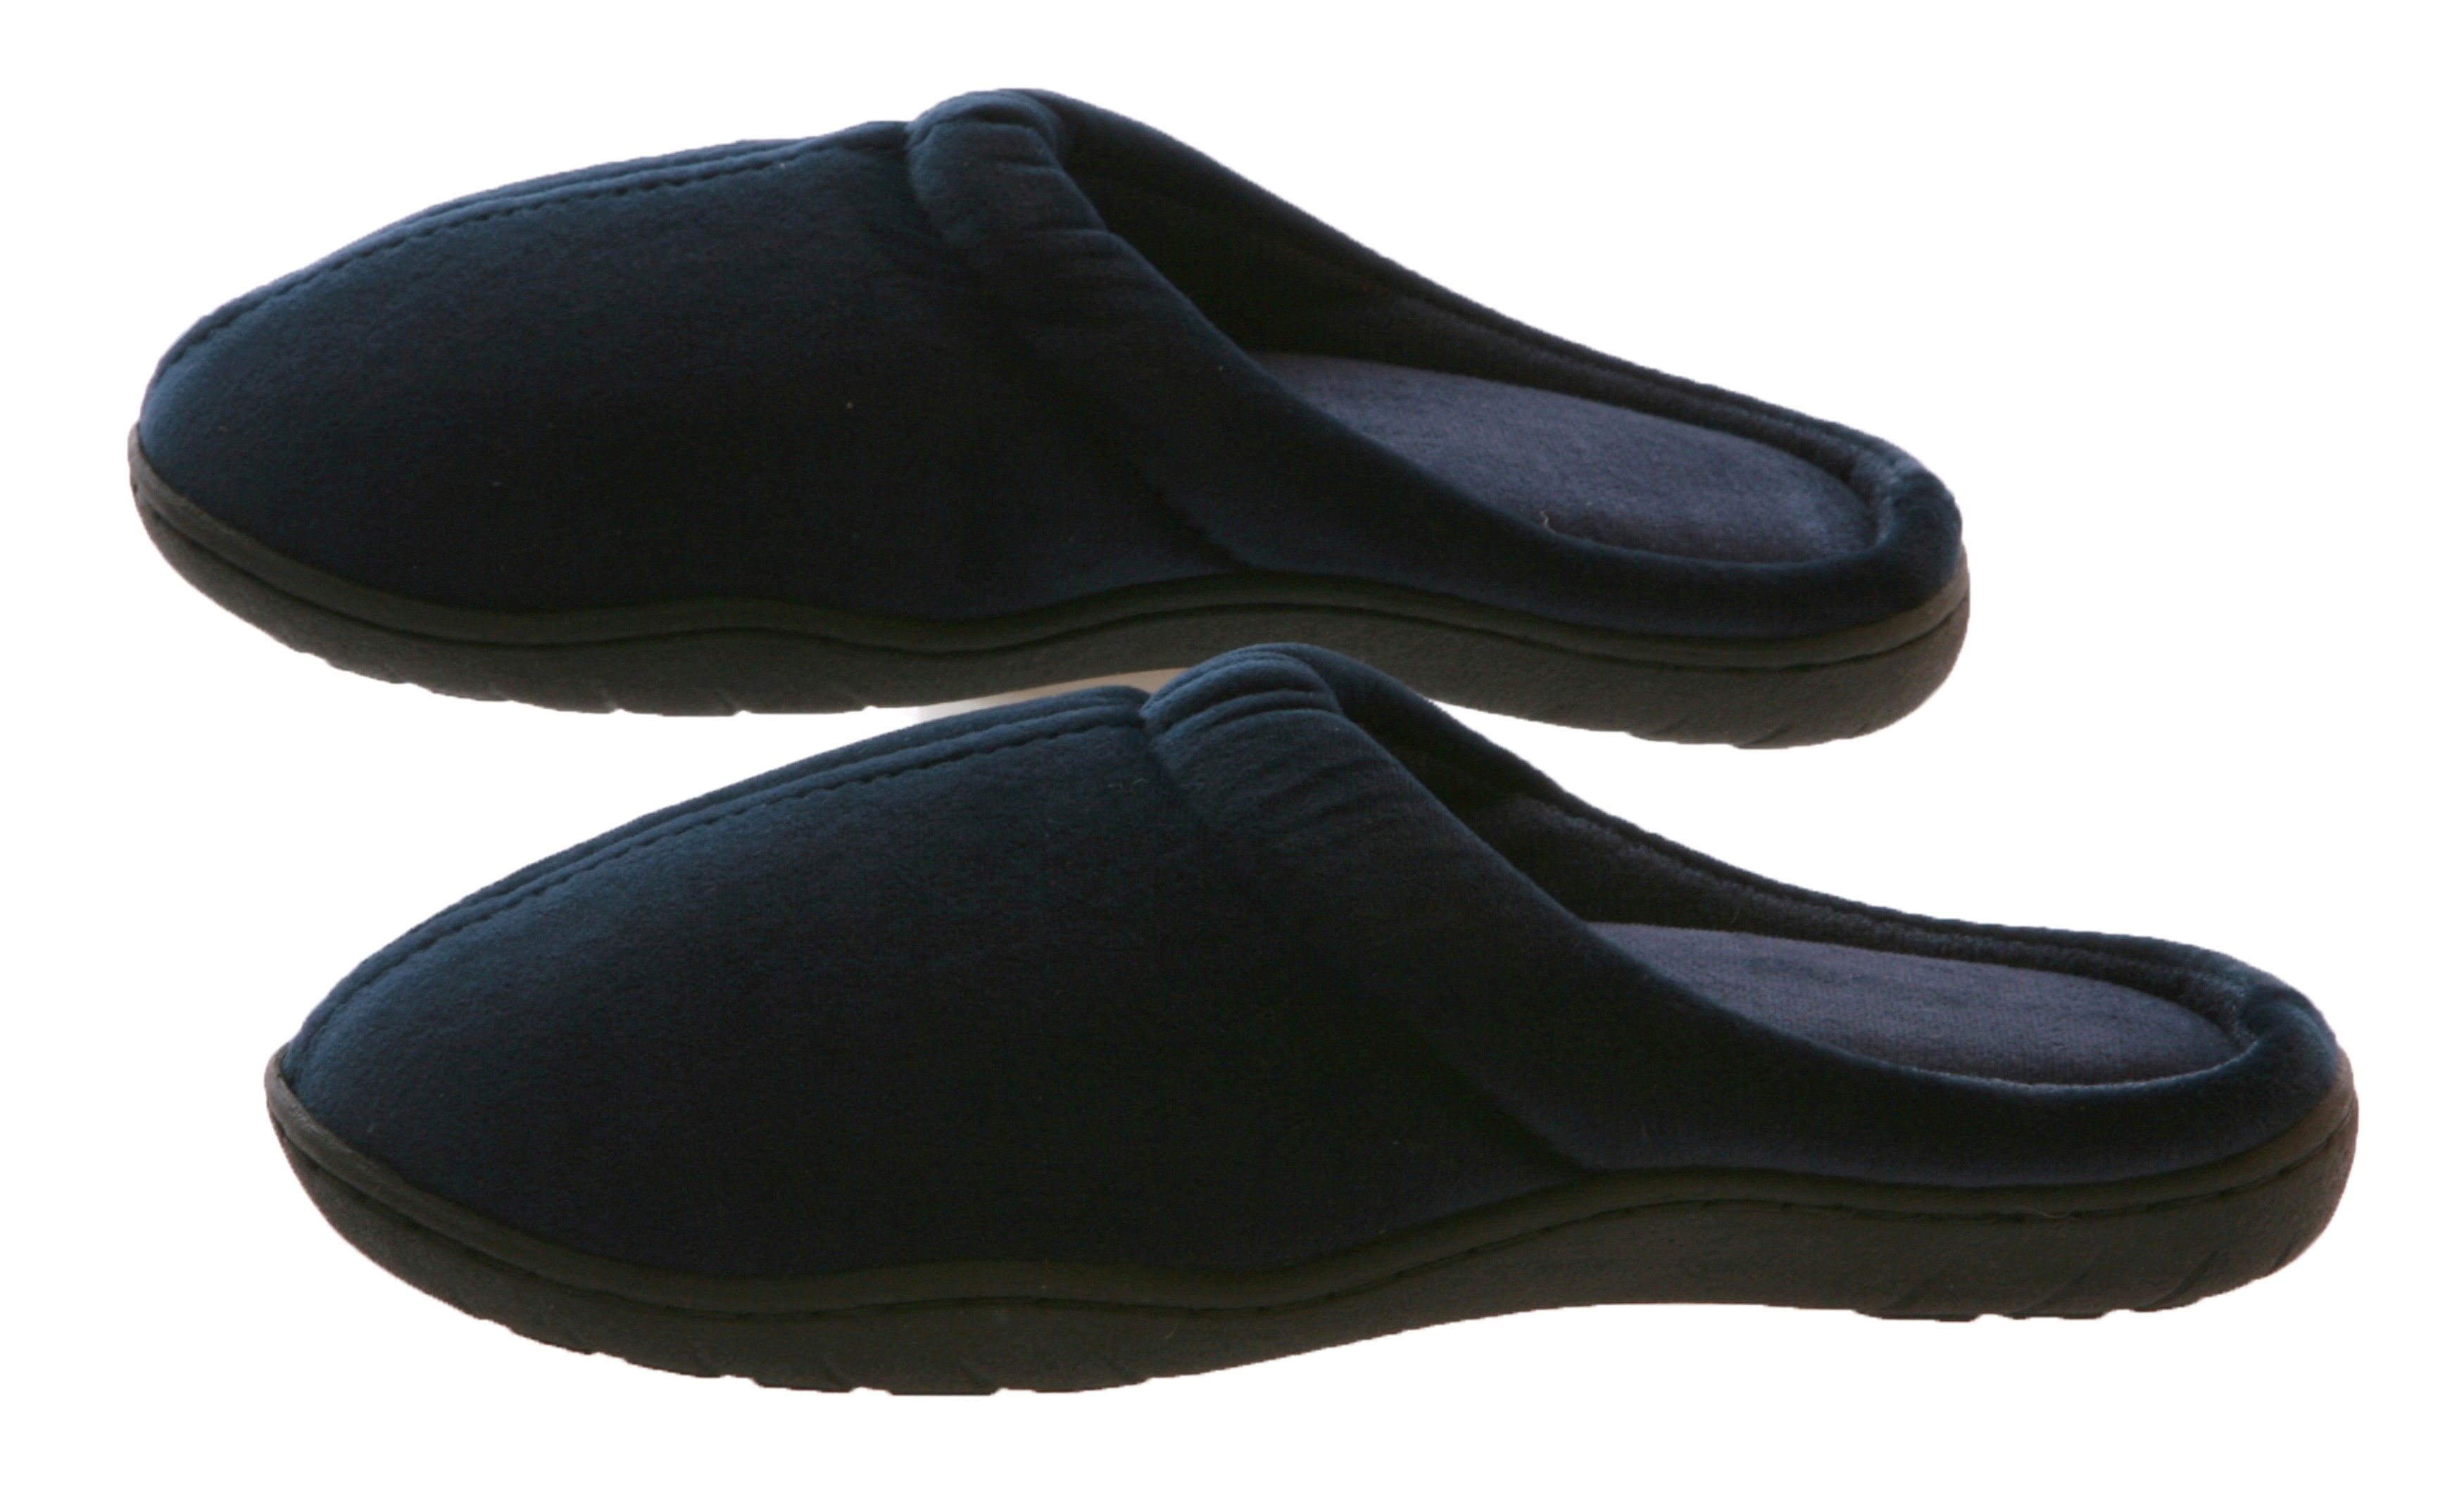 Memory Foam Slippers The Most Comfortable Sleepers Made Of Memory Foam